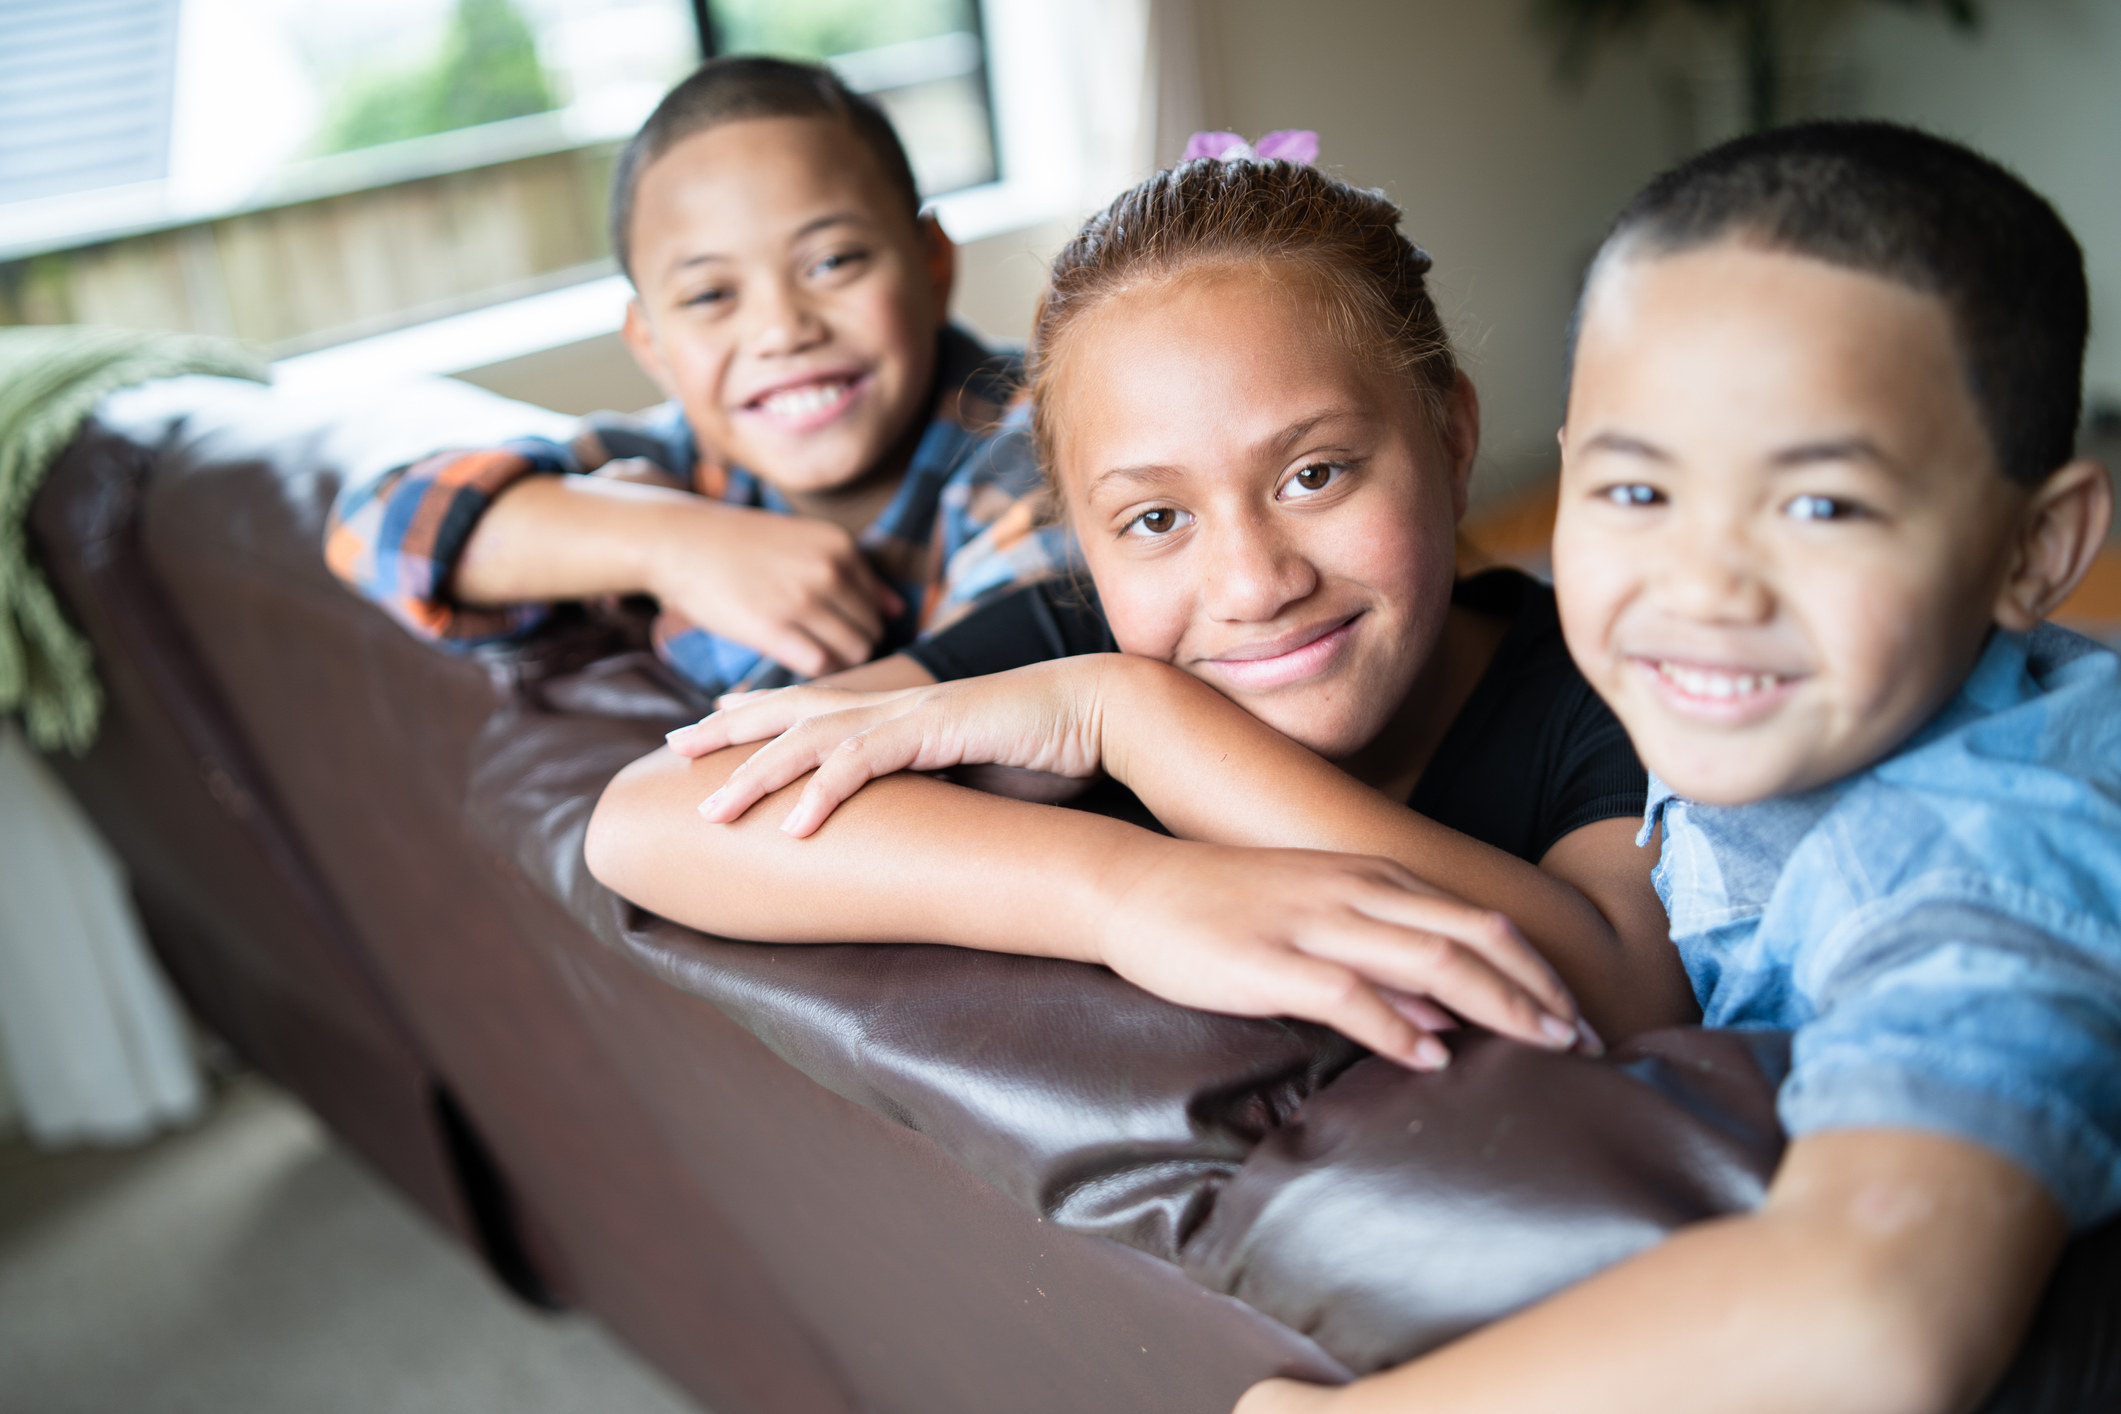 Maori children smile on a couch